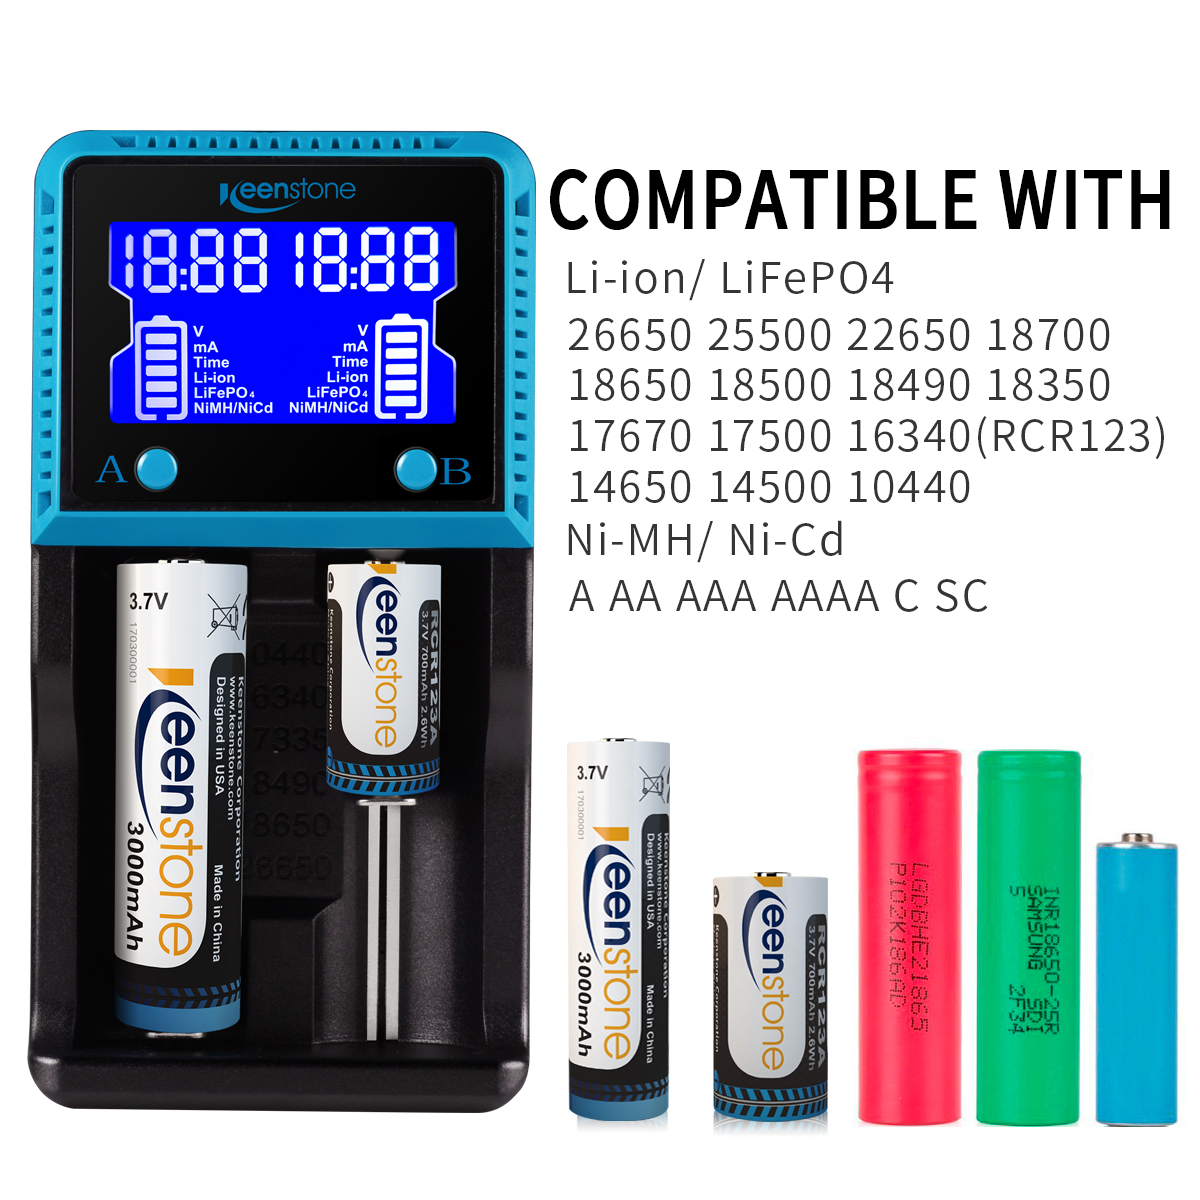 WOYUM Smart Battery Charger with USB Port Charging for Rechargeable Lithium 10440 14500 14650 16340 16650 17650 17670 18350 18490 18500 18650 Batteries NiMH AA AAA Battery